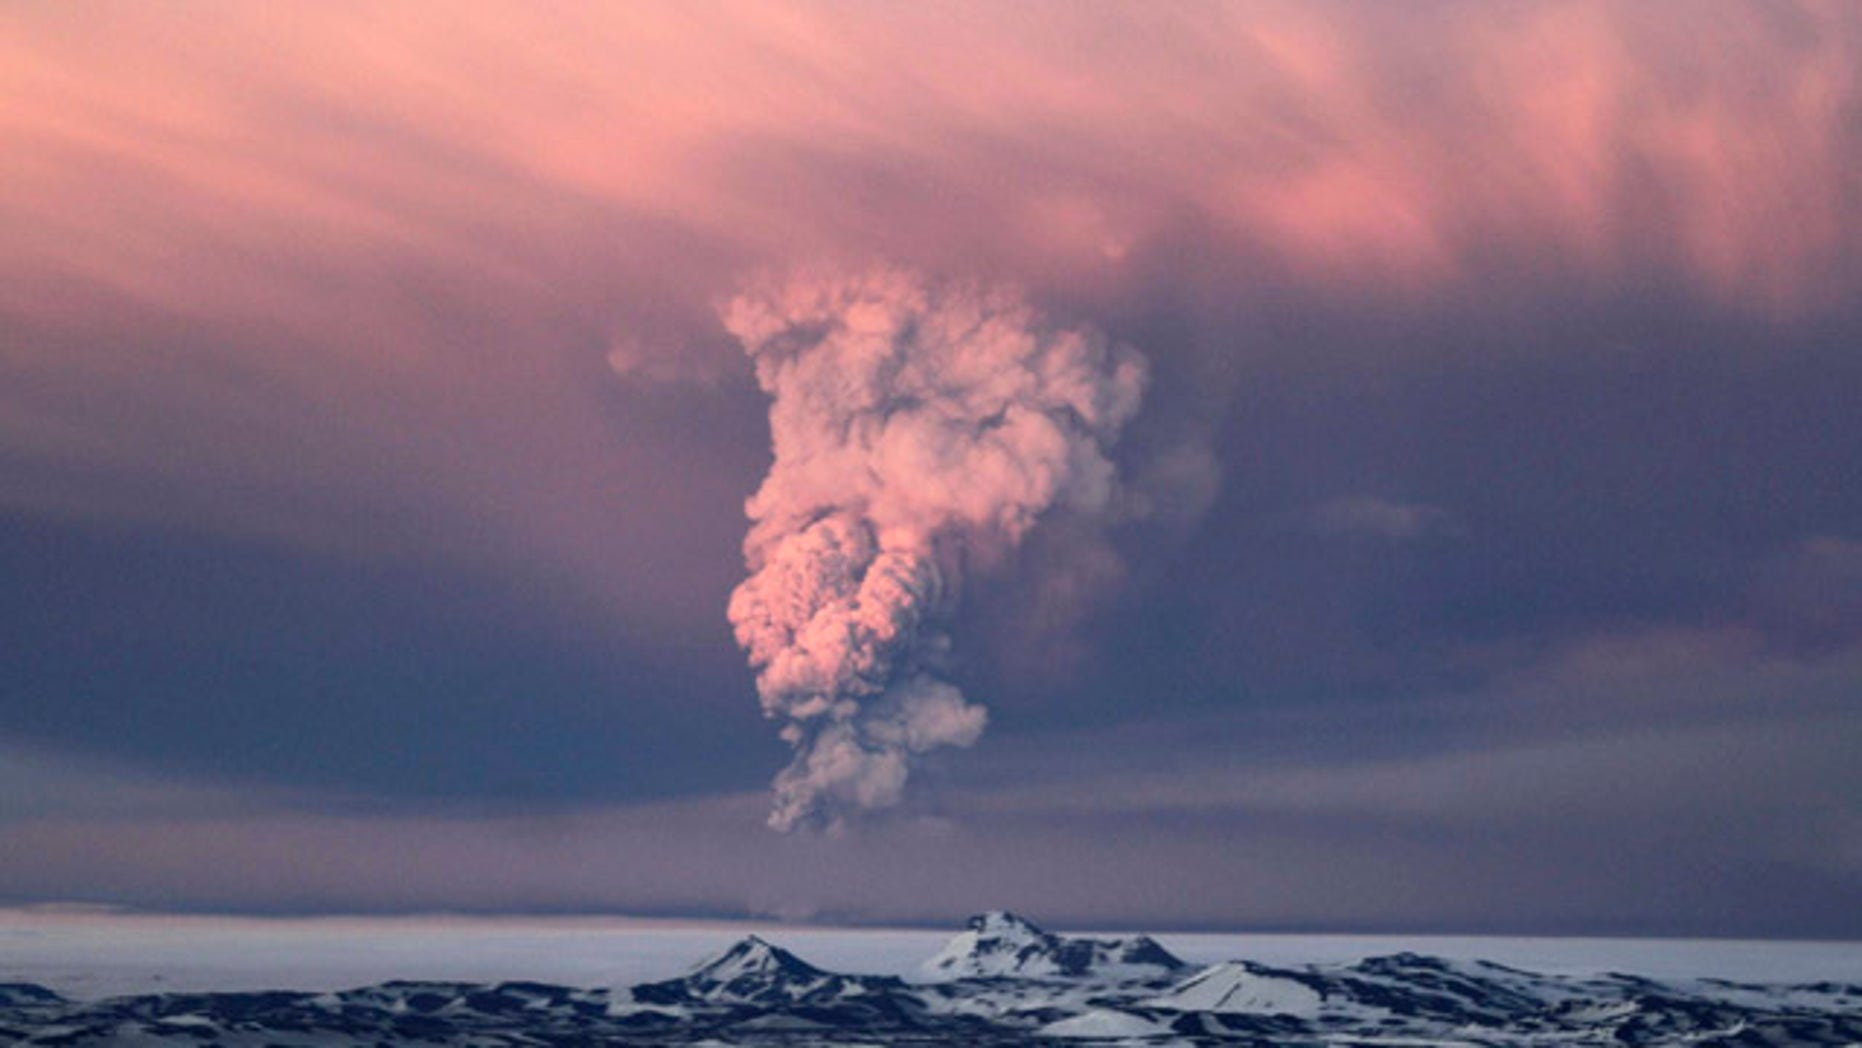 May 21: Smoke plumes from the Grimsvotn volcano, which lies under the Vatnajokull glacier, about 120 miles east of the capital, Rejkjavik, which began erupting Saturday for the first time since 2004.